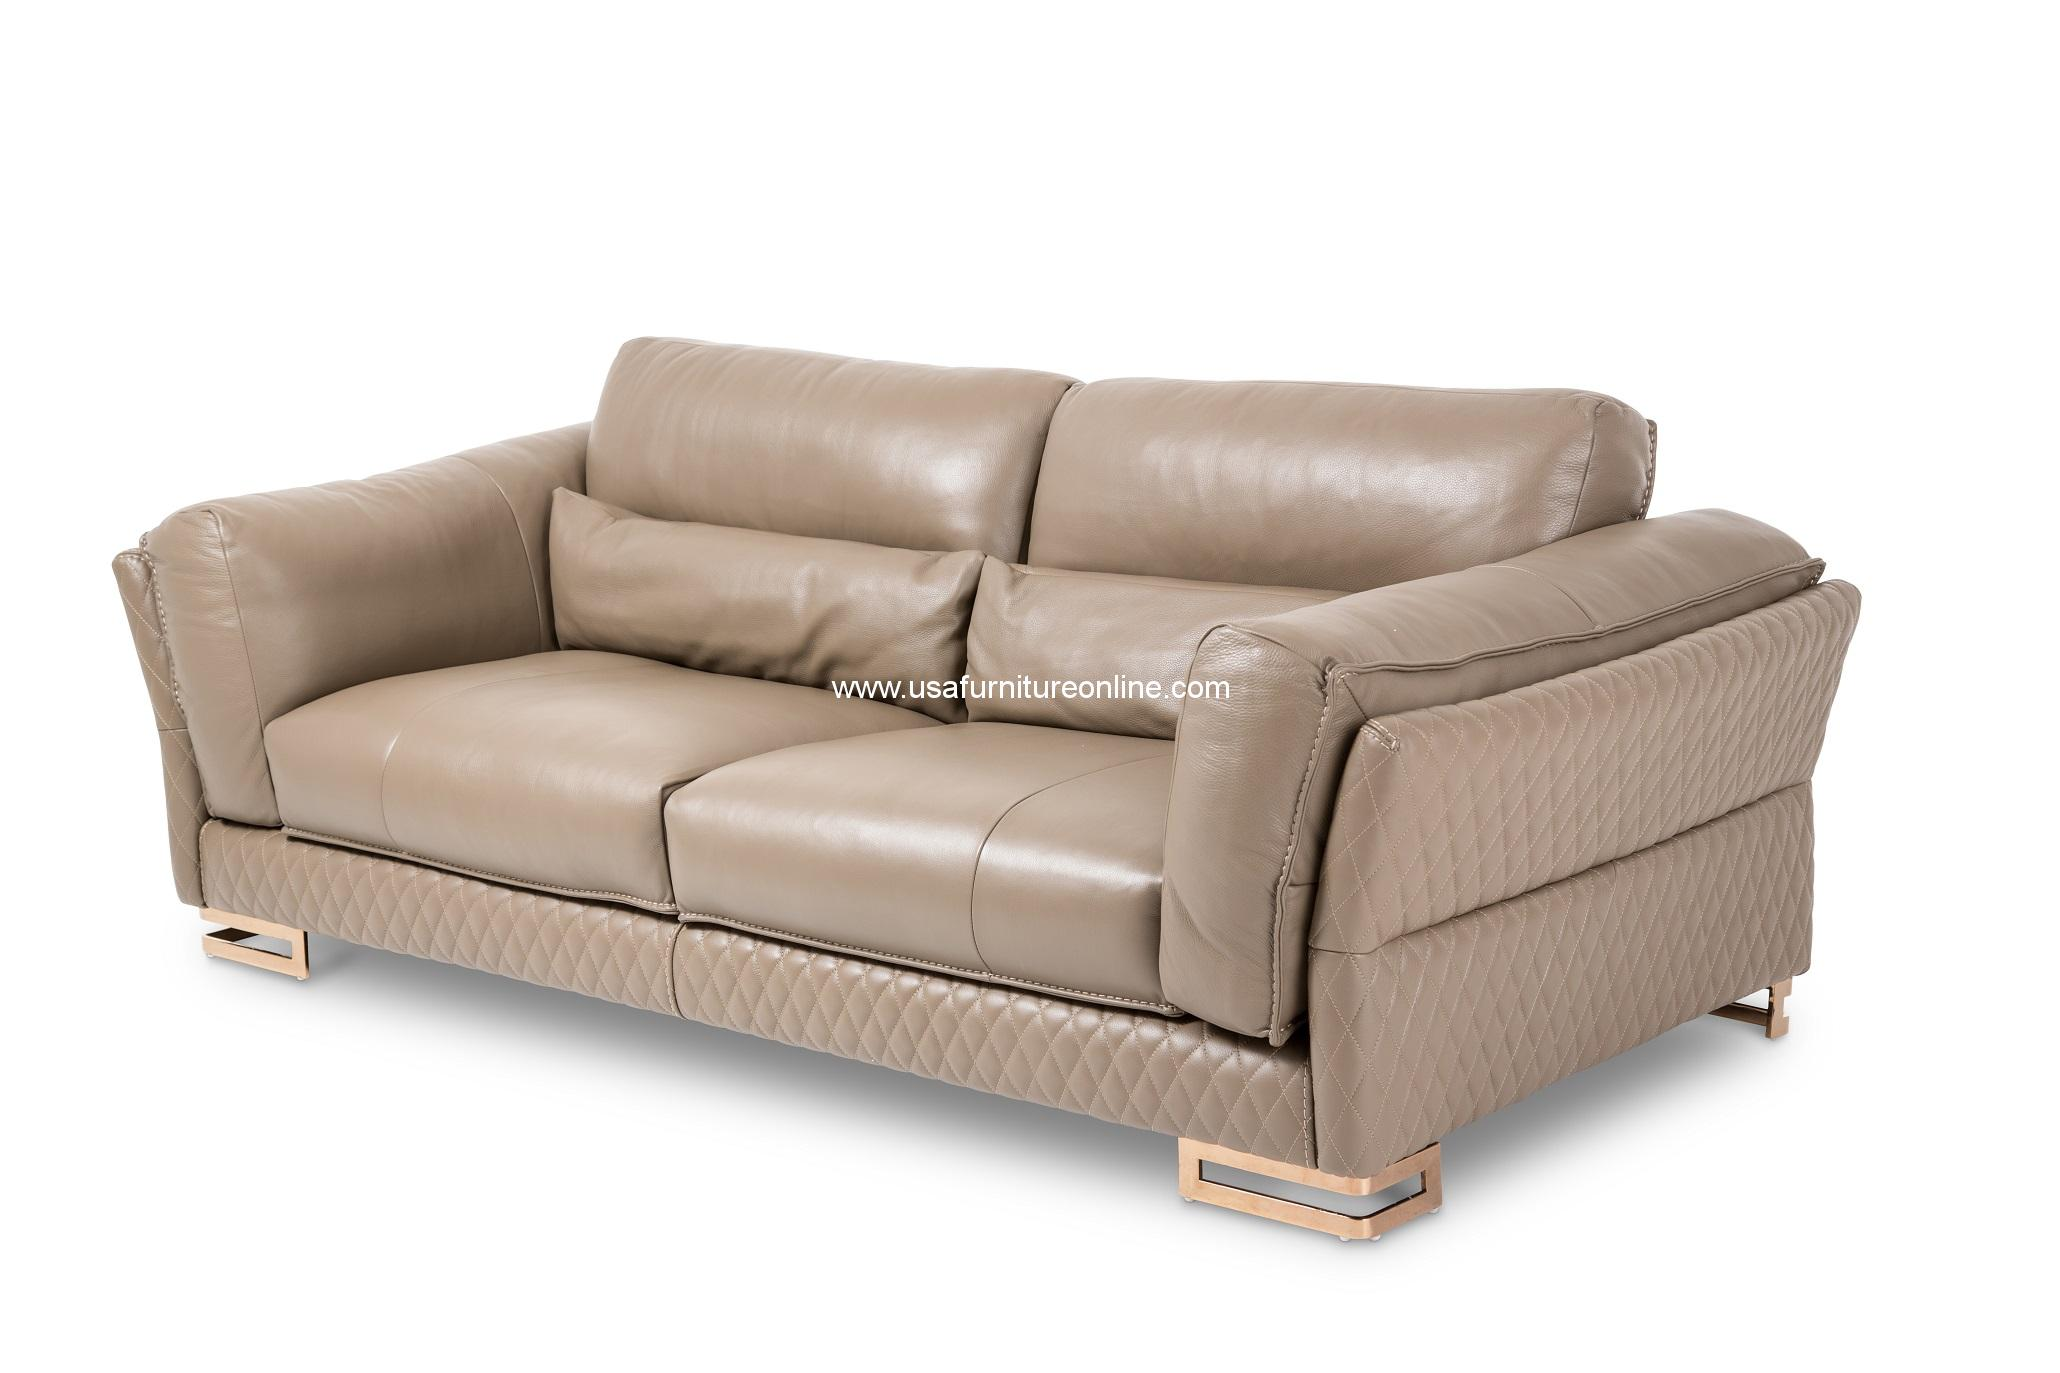 Sofa Taupe Monica Taupe Leather Sofa Rose Gold Leg Usa Furniture Online